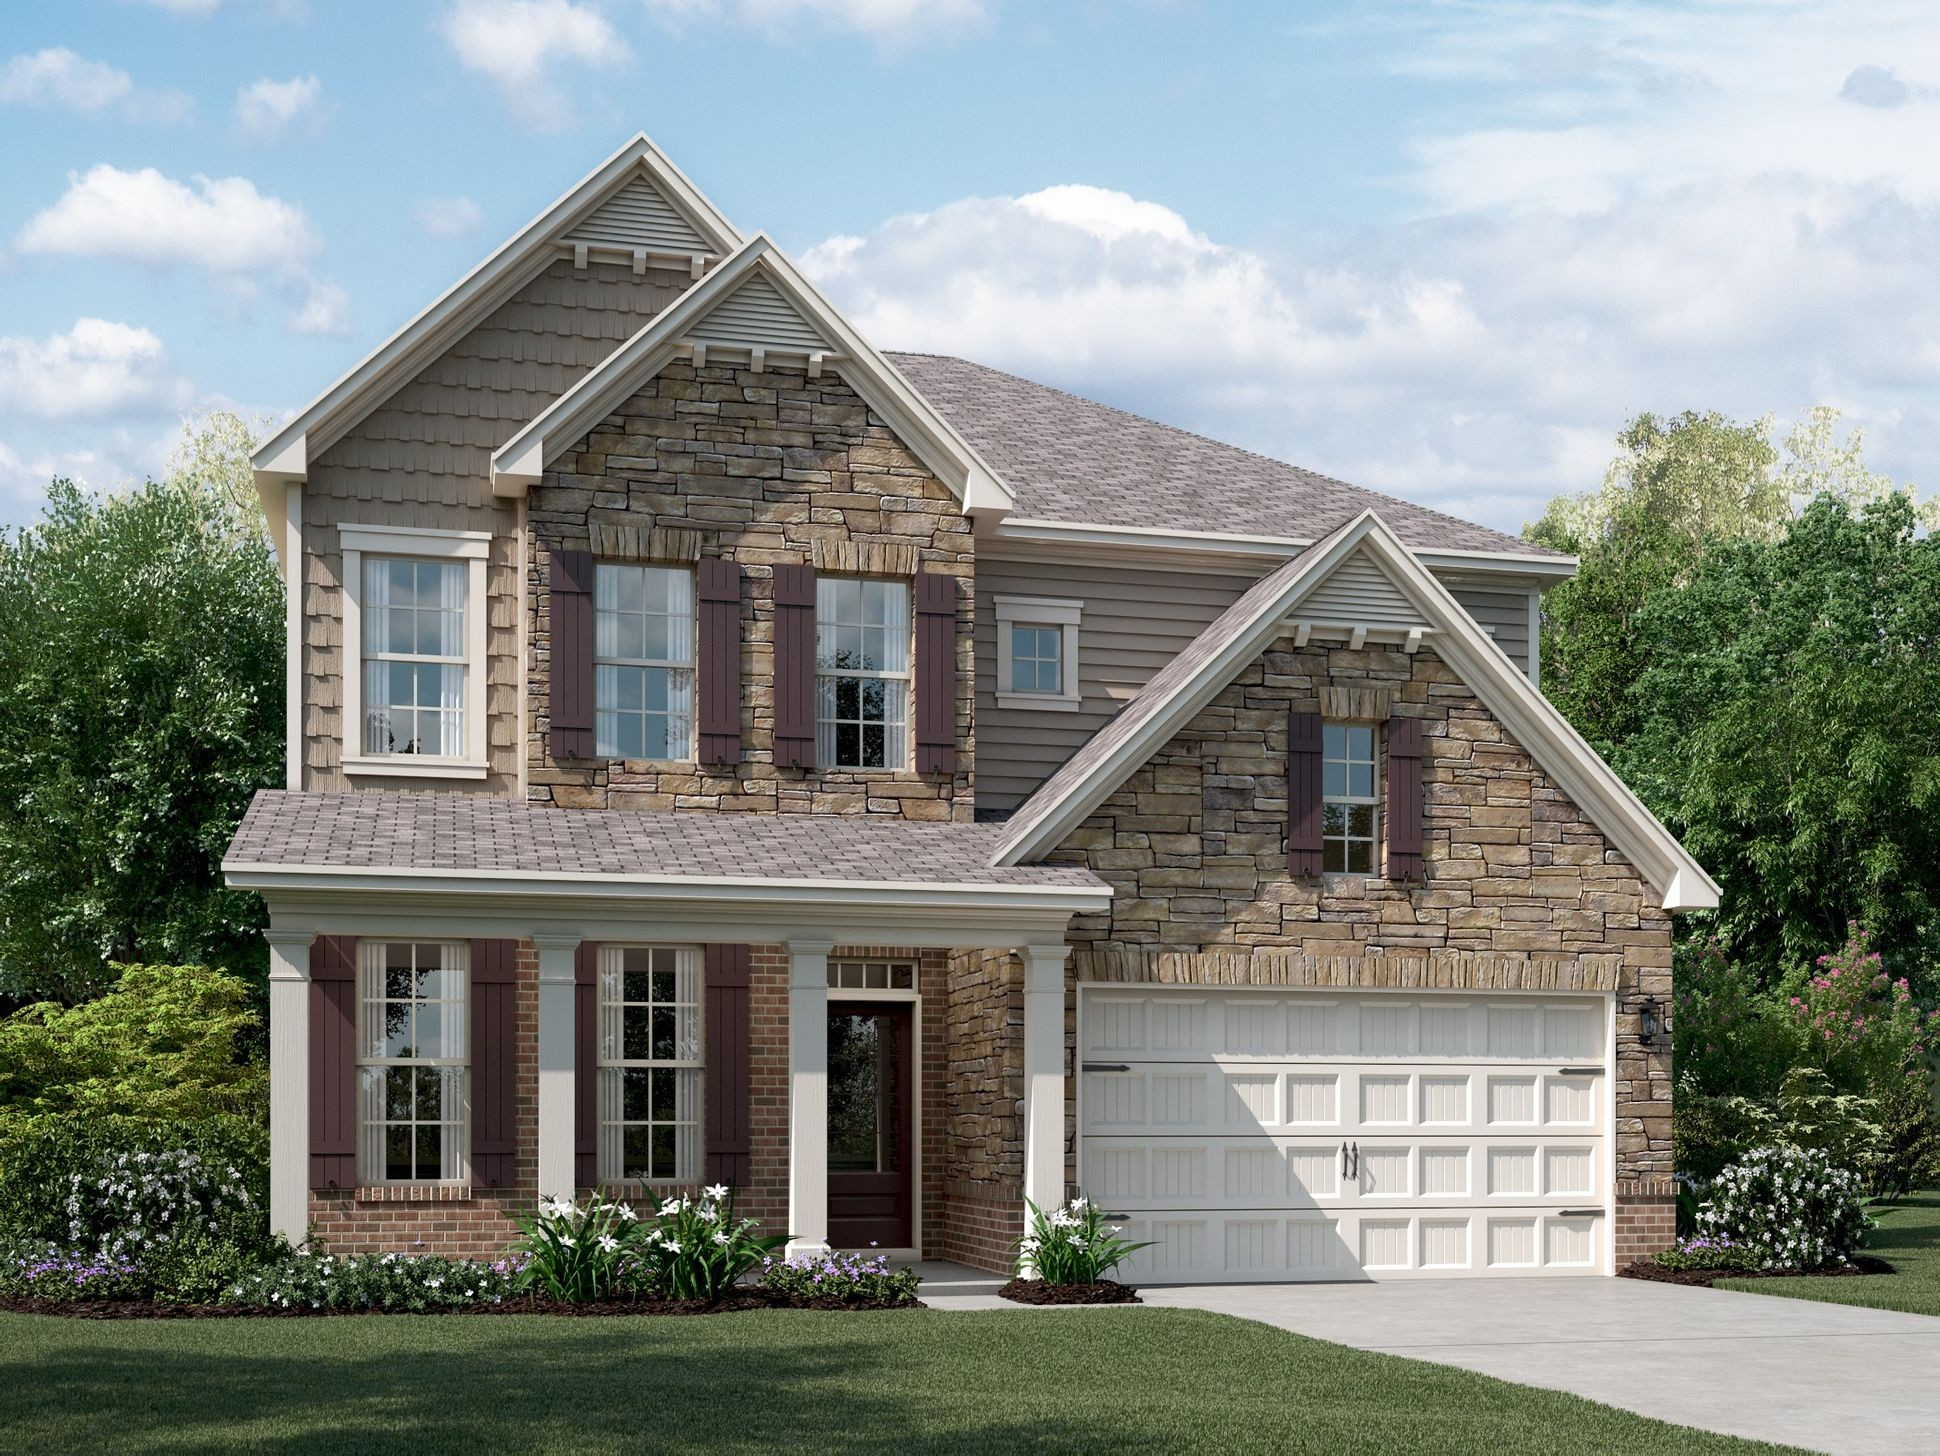 New Homes Sale Suwanee Ga